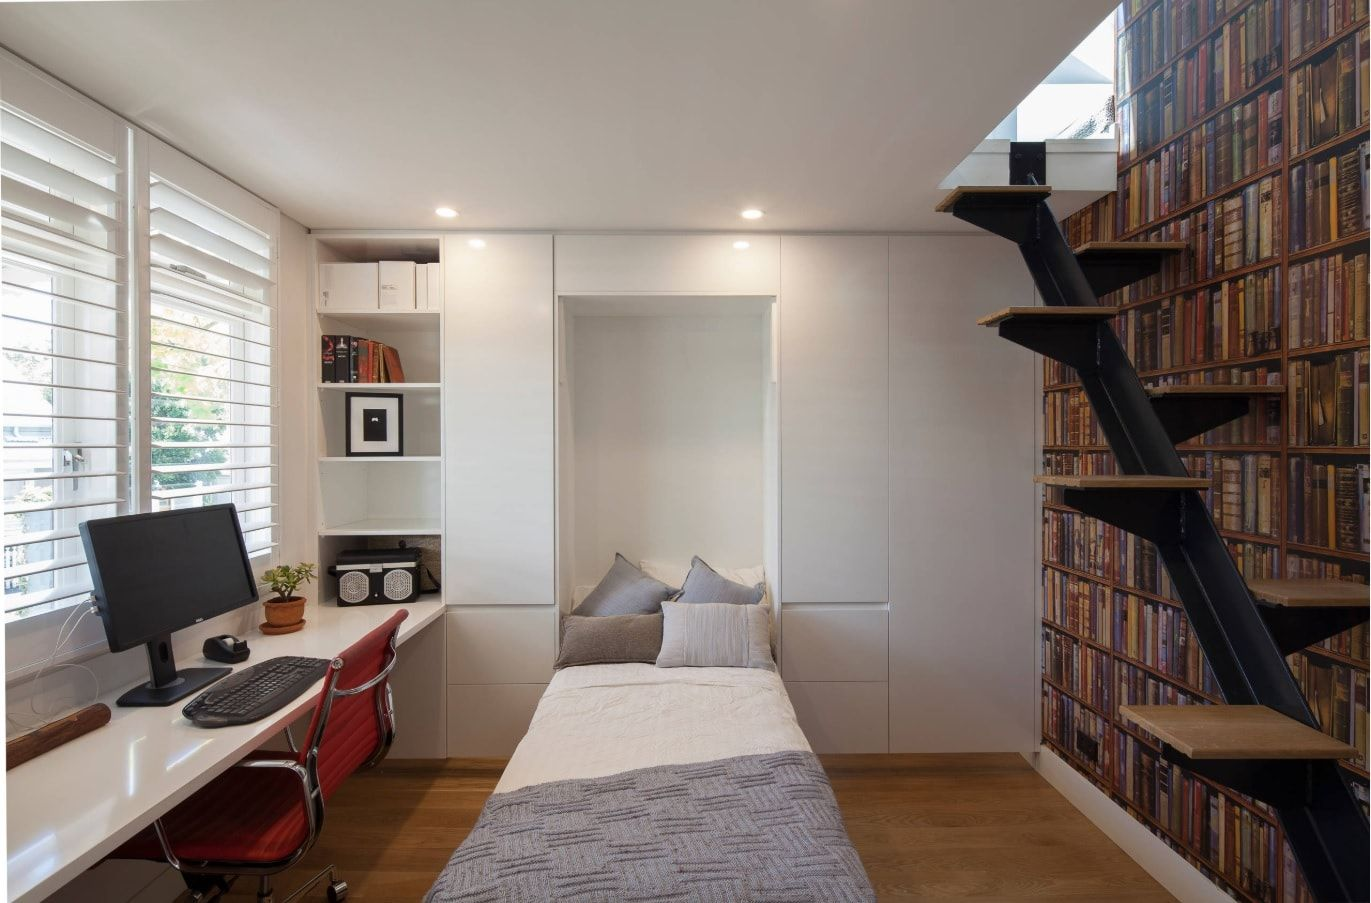 Staircase to the floor above and bedroom with the folding out bed